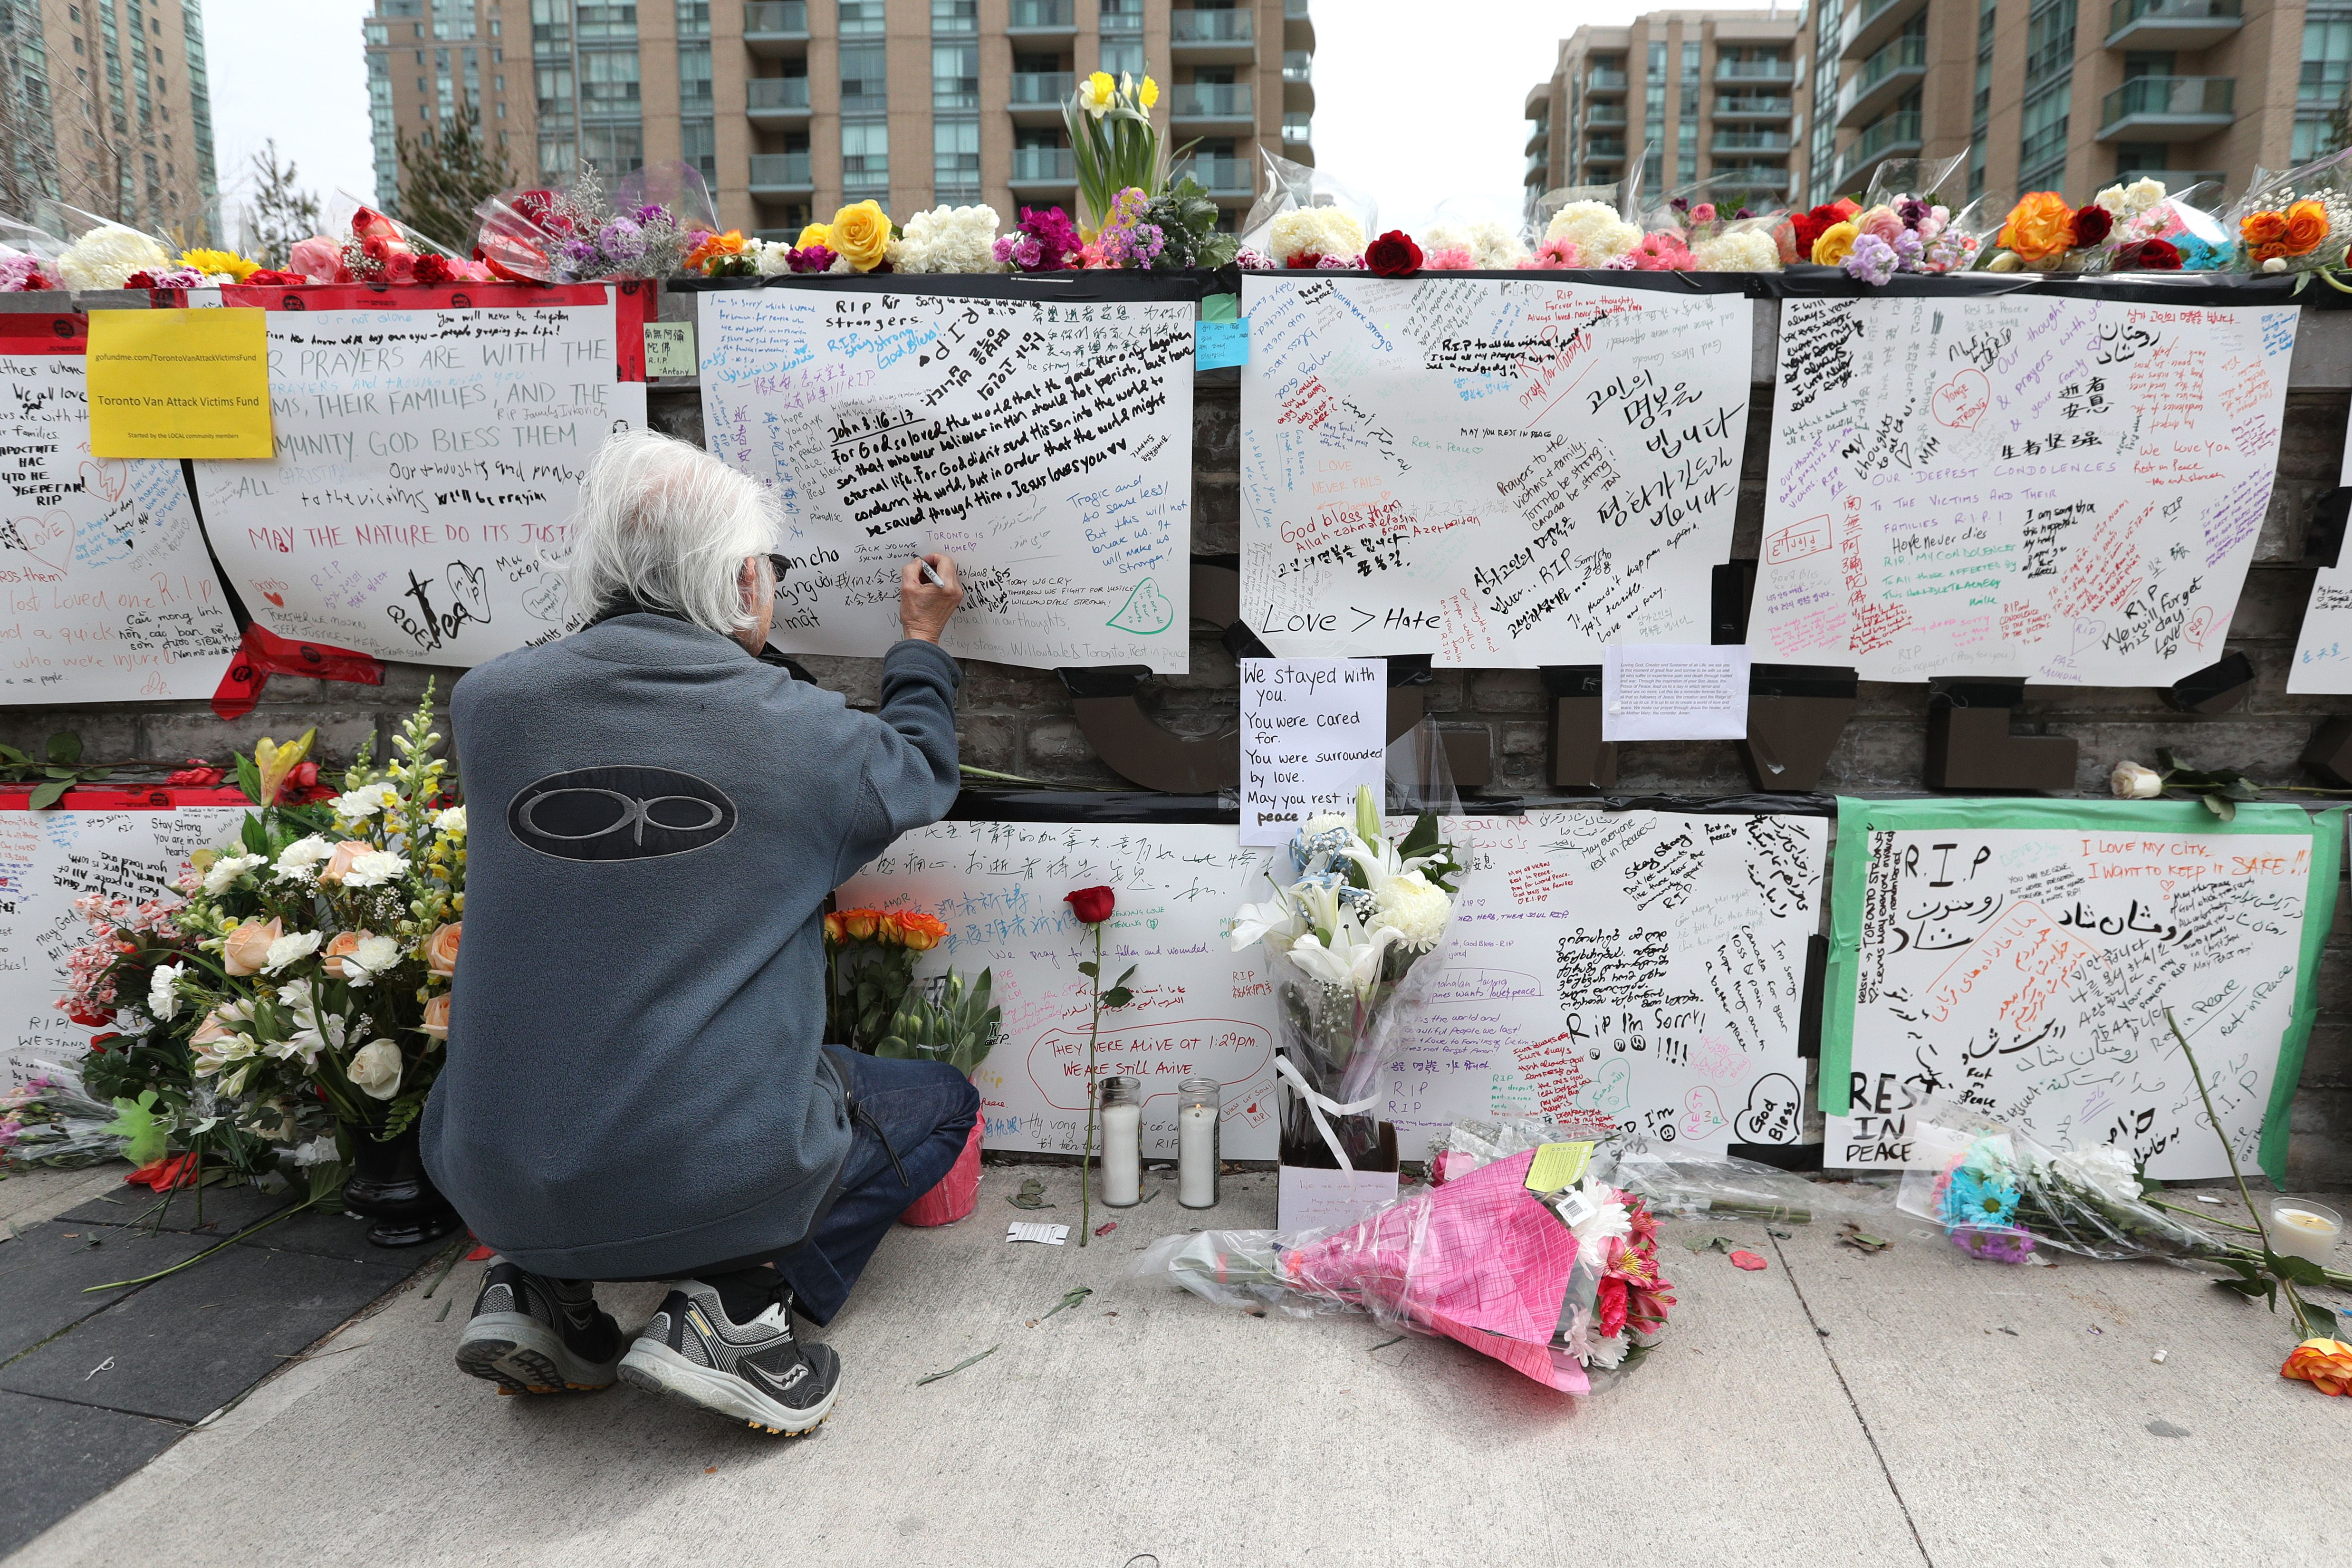 Jack Young leaves a notes on April 24, 2018, at a makeshift memorial for victims in the van attack in Toronto, Ontario.(LARS HAGBERG/AFP via Getty Images)